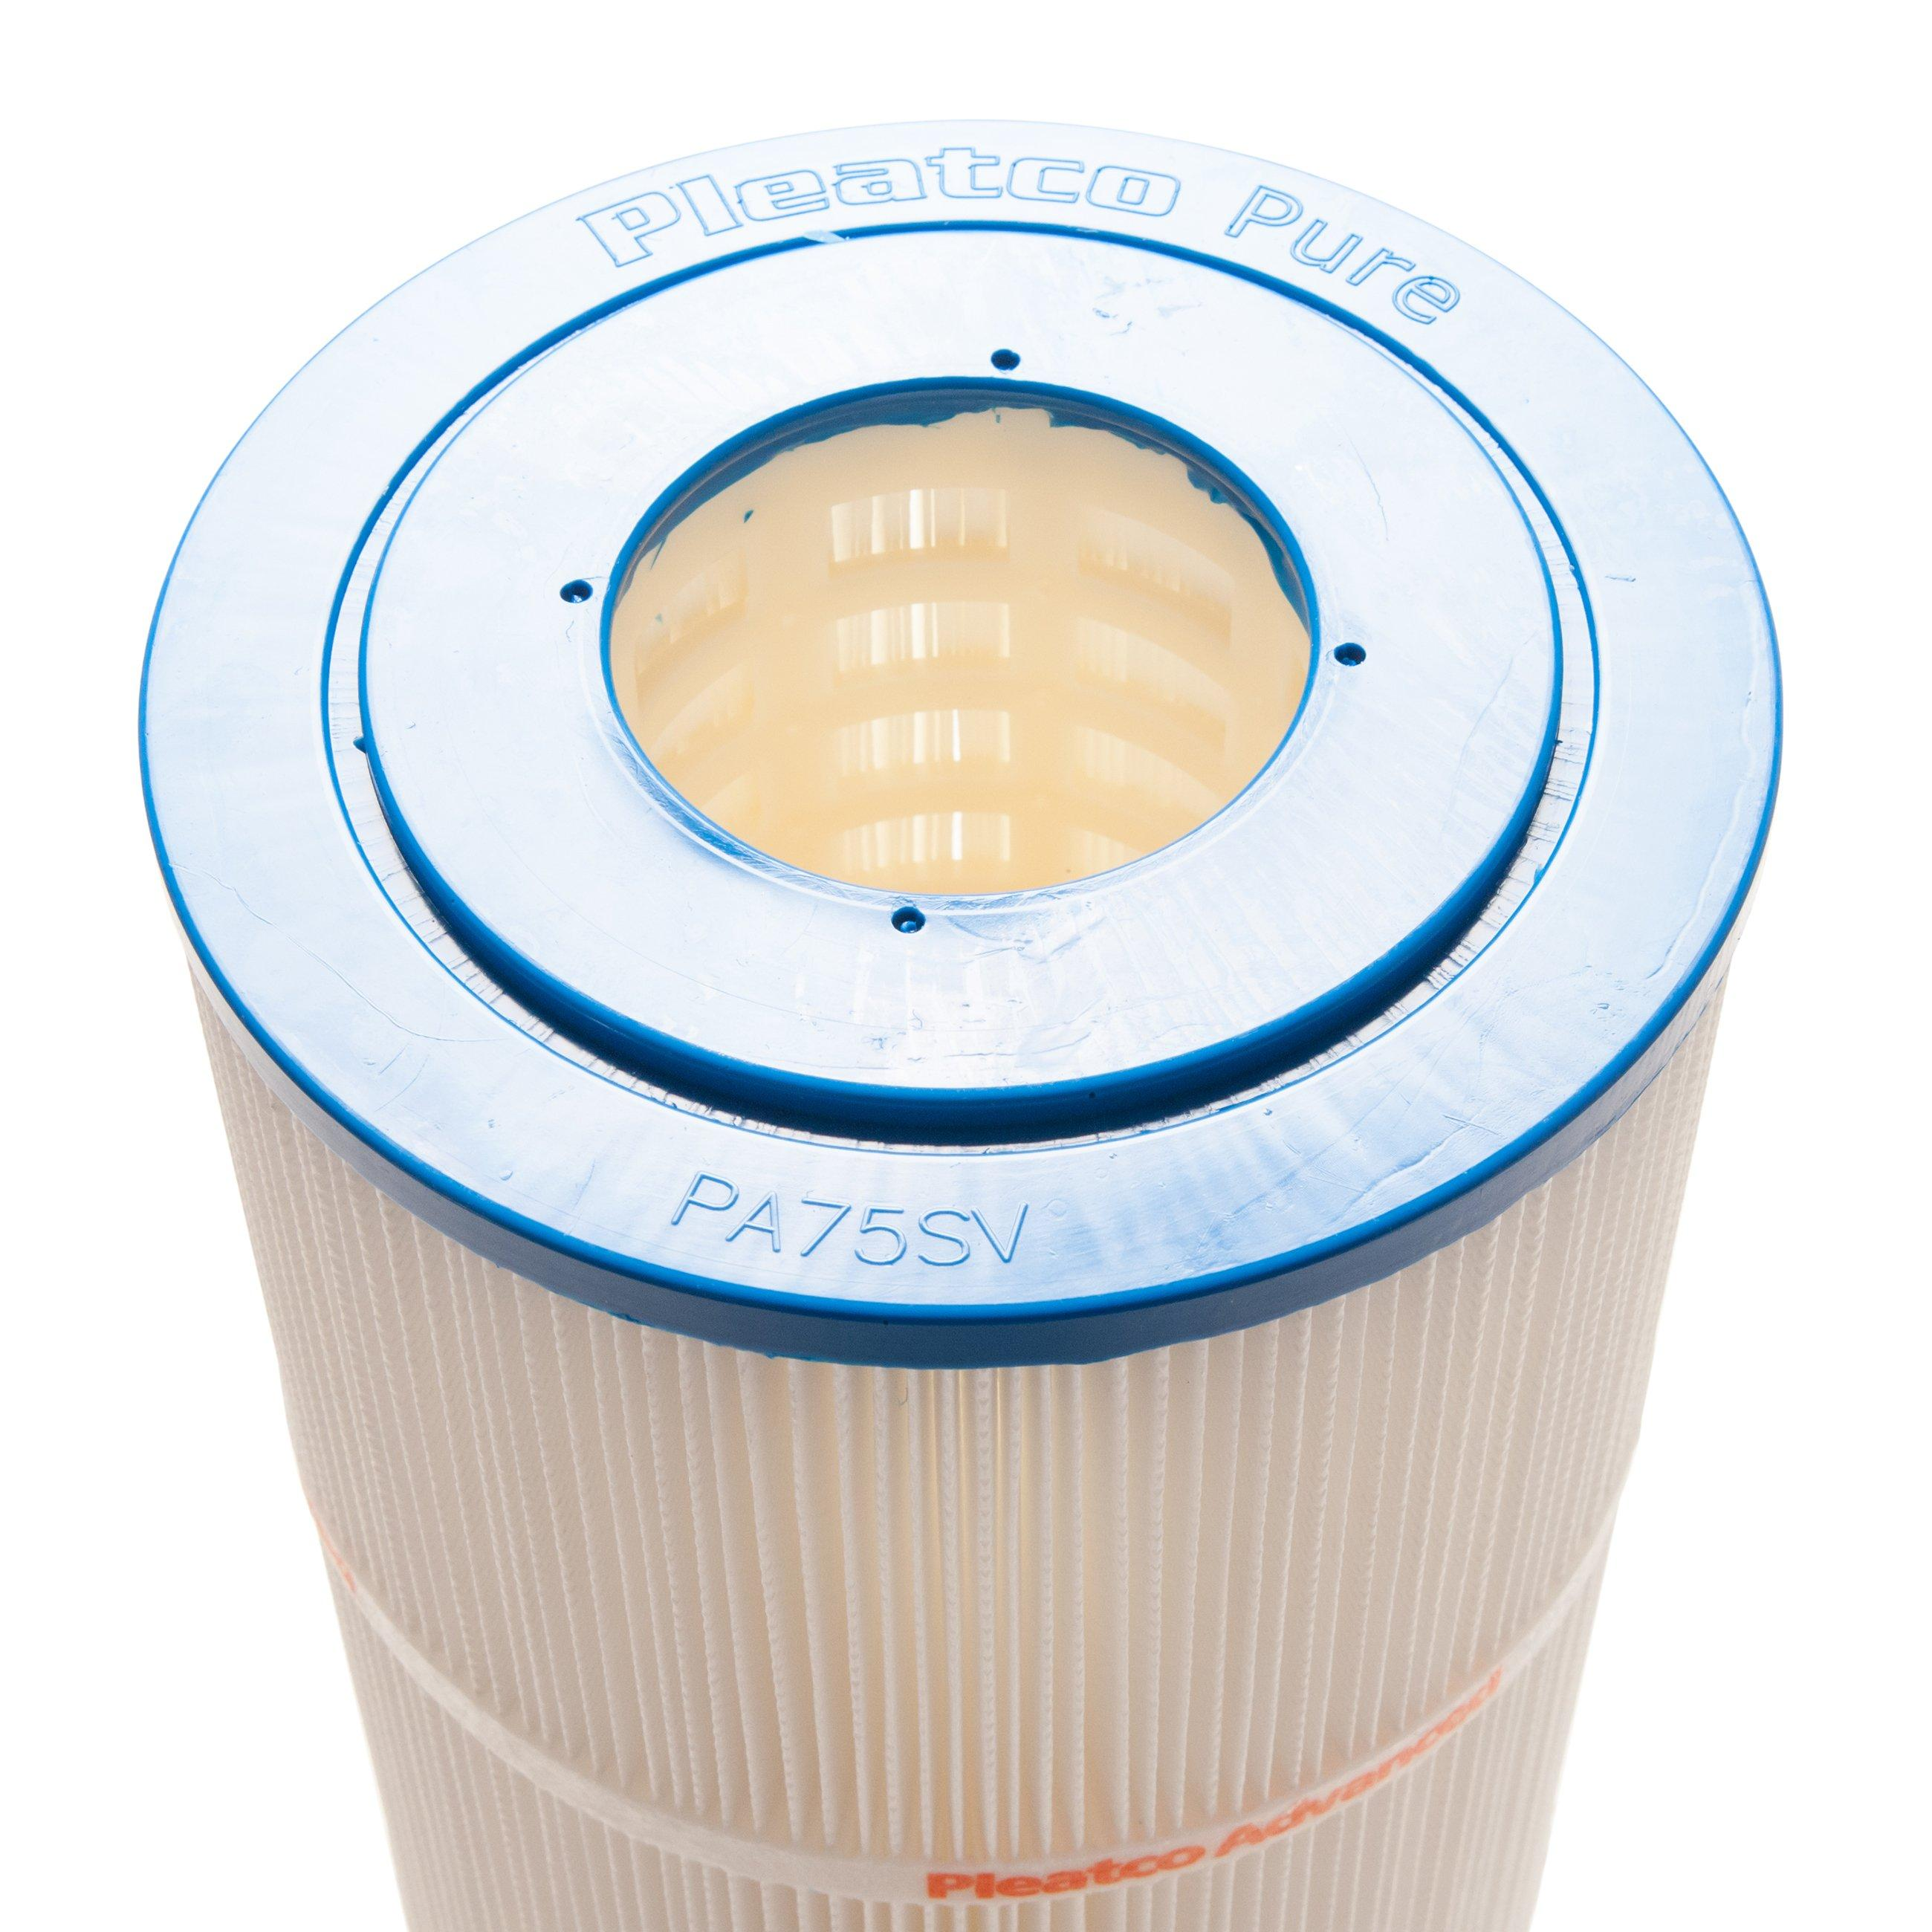 Pool Filter Cartridge For Hayward C 570 Swimclear C3020 Super Star Clear C3000 C3000S Sta Rite Prc 75